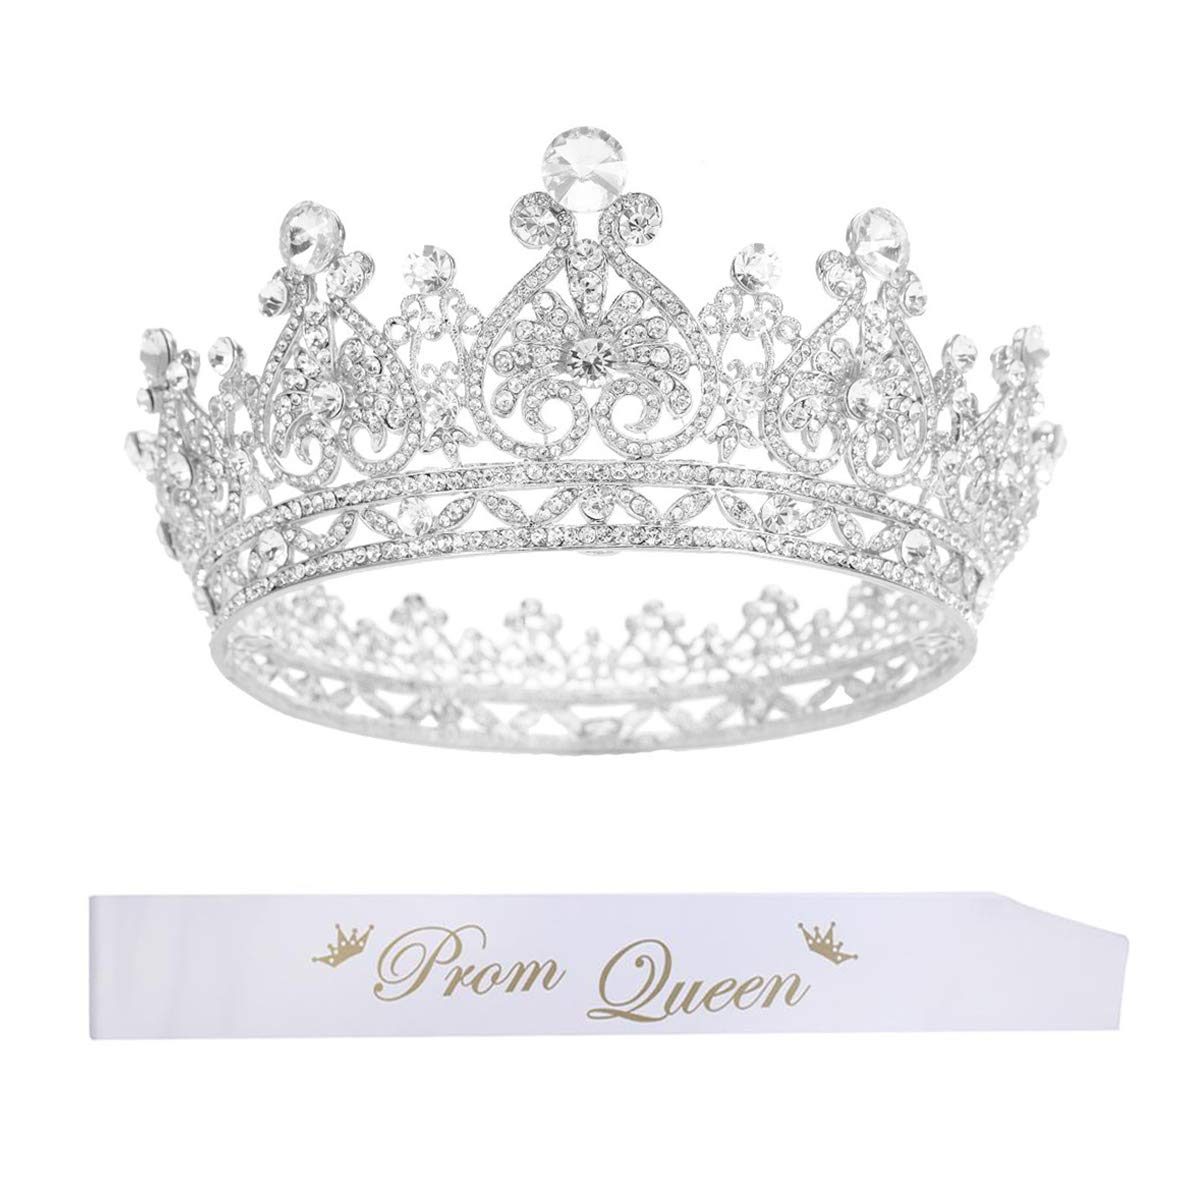 S SNUOY Silver Plated Rhinestone Full Round Wedding Crown and Sash for Bridal Party Accessories by S SNUOY